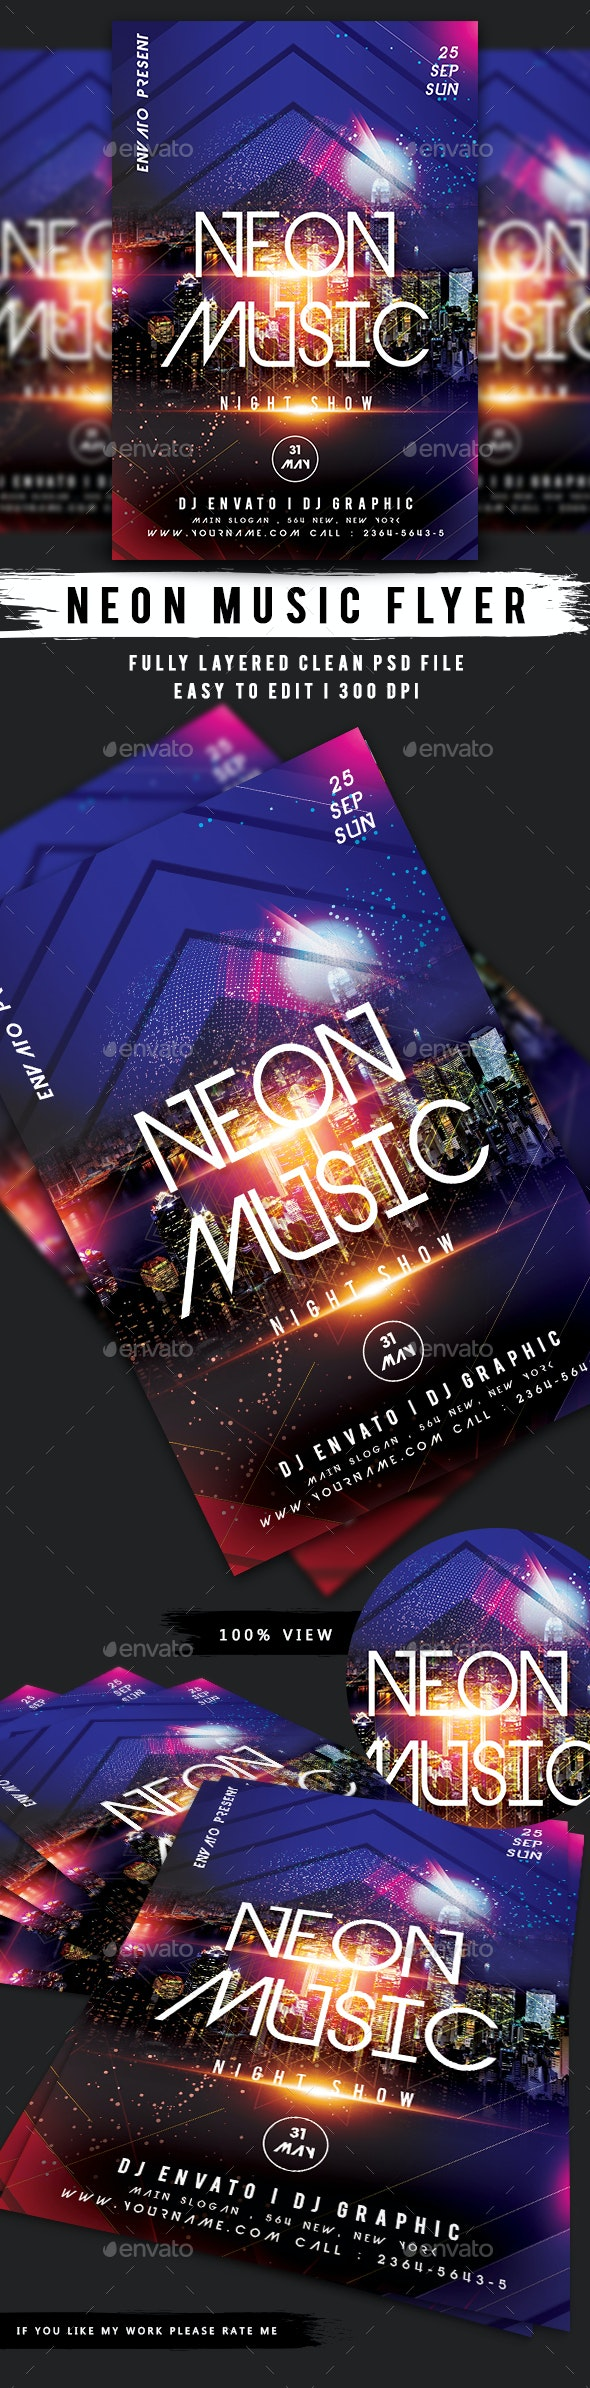 Neon Music Flyer - Clubs & Parties Events